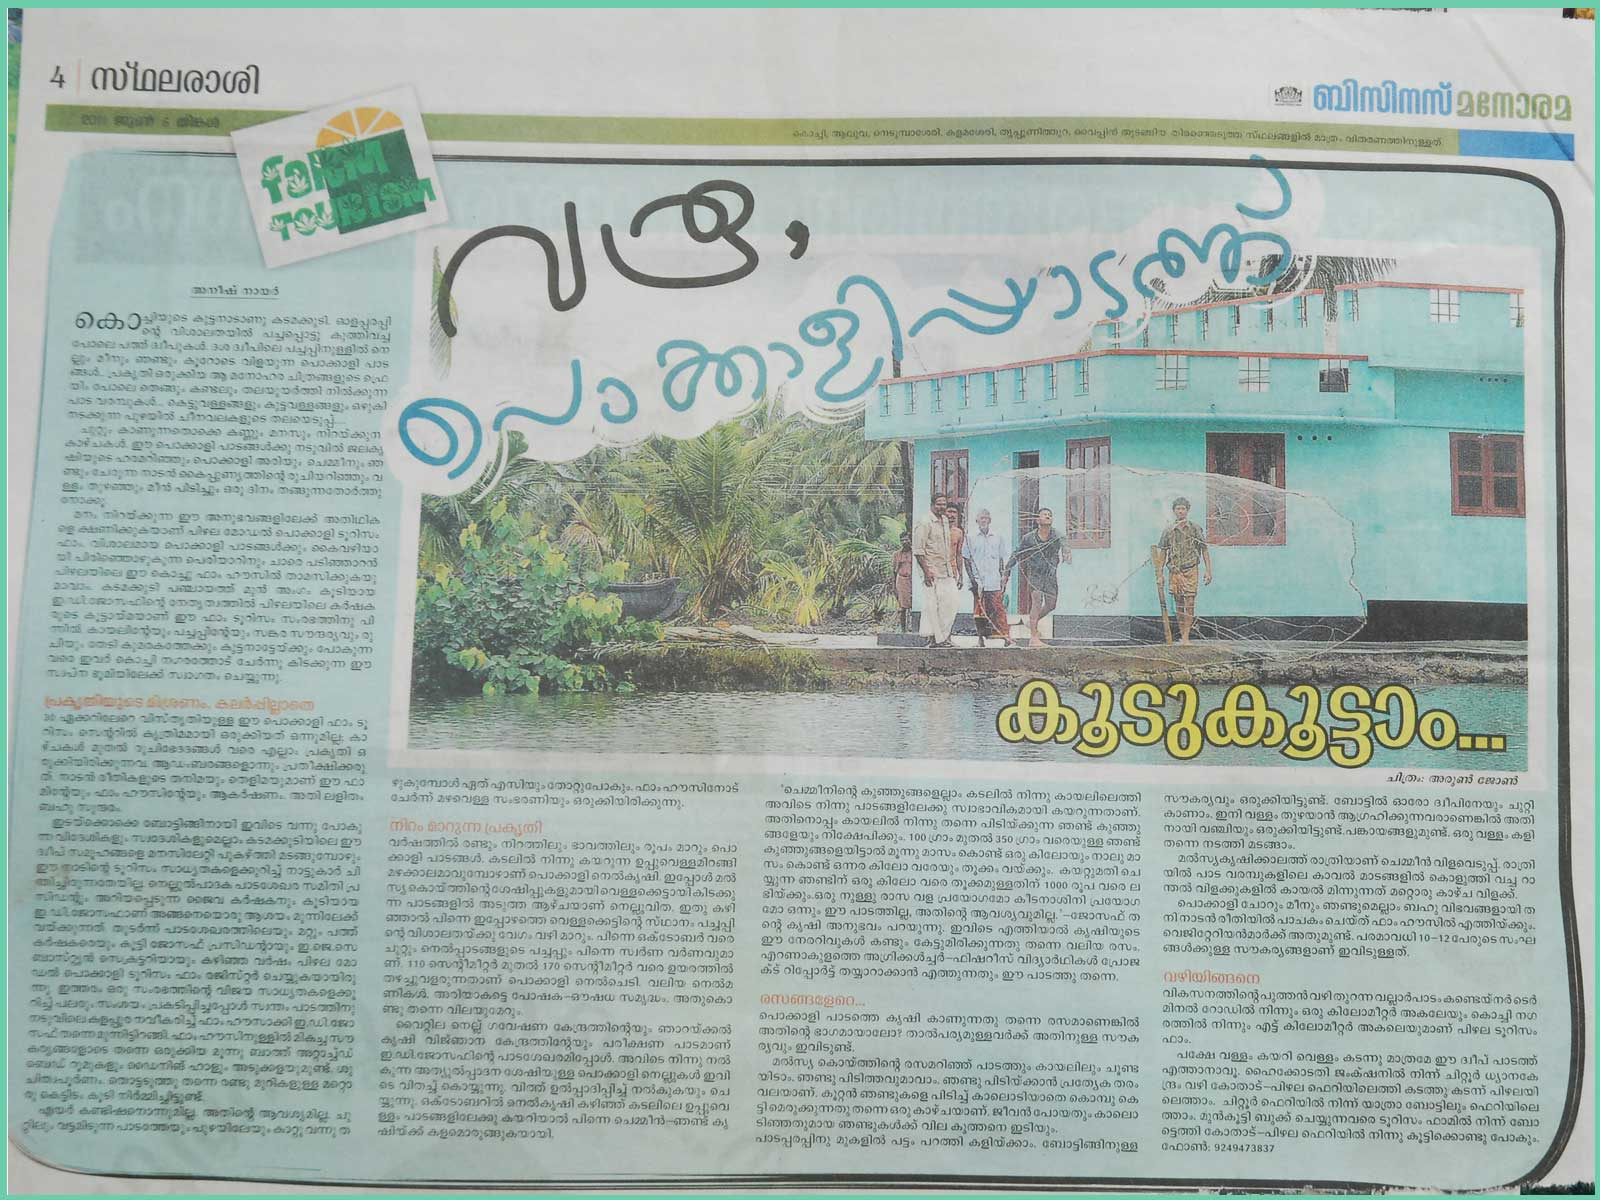 pizhala_pokkali_tourism_in_manoramanews_paper